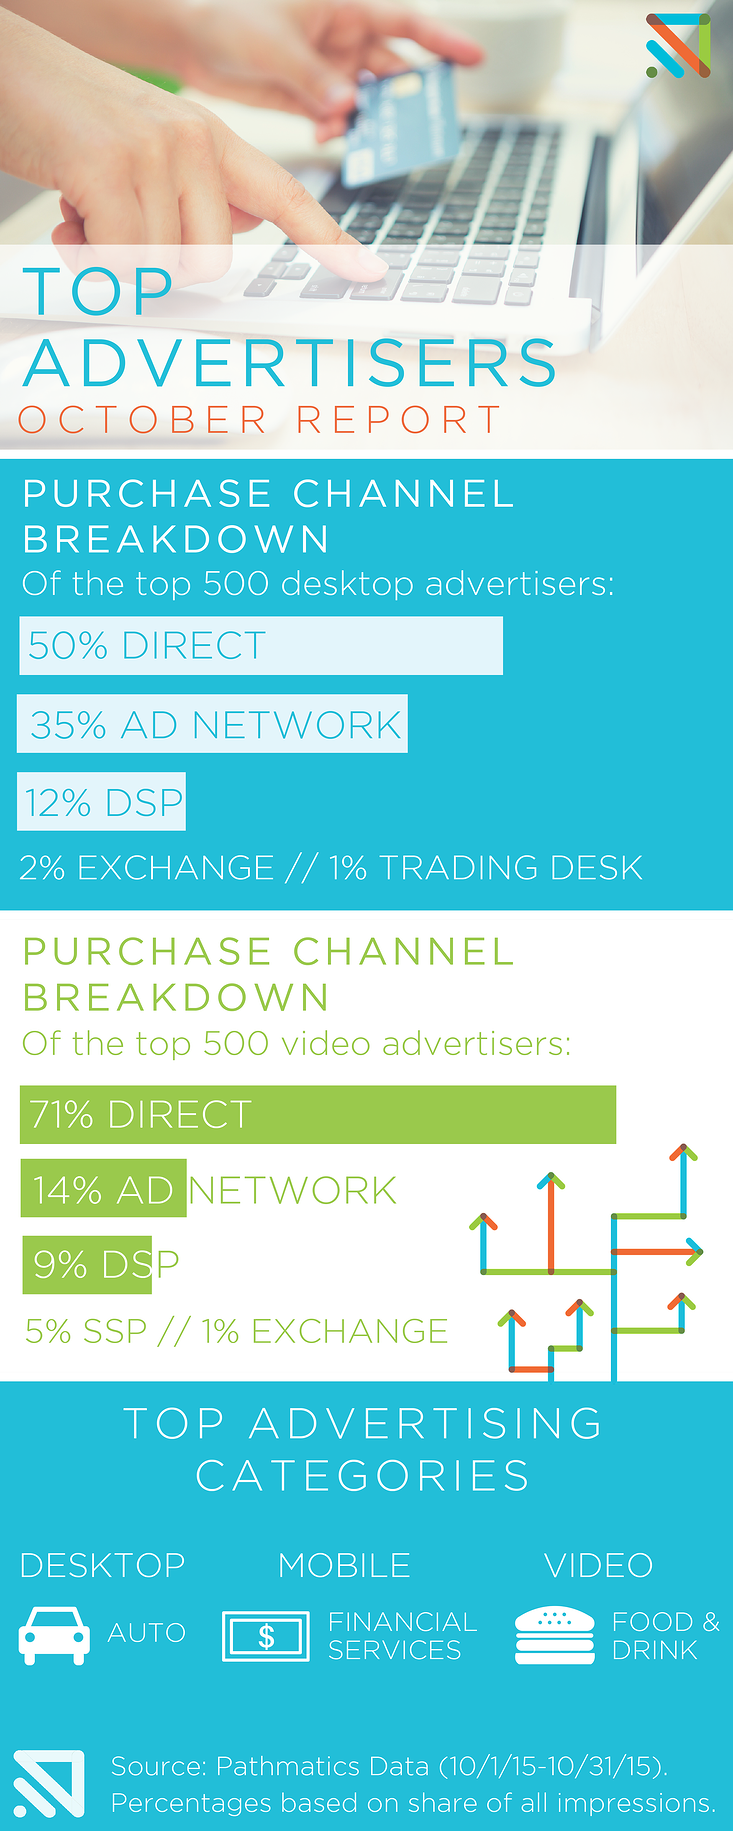 October-Top-Advertisers-infographic-1.png